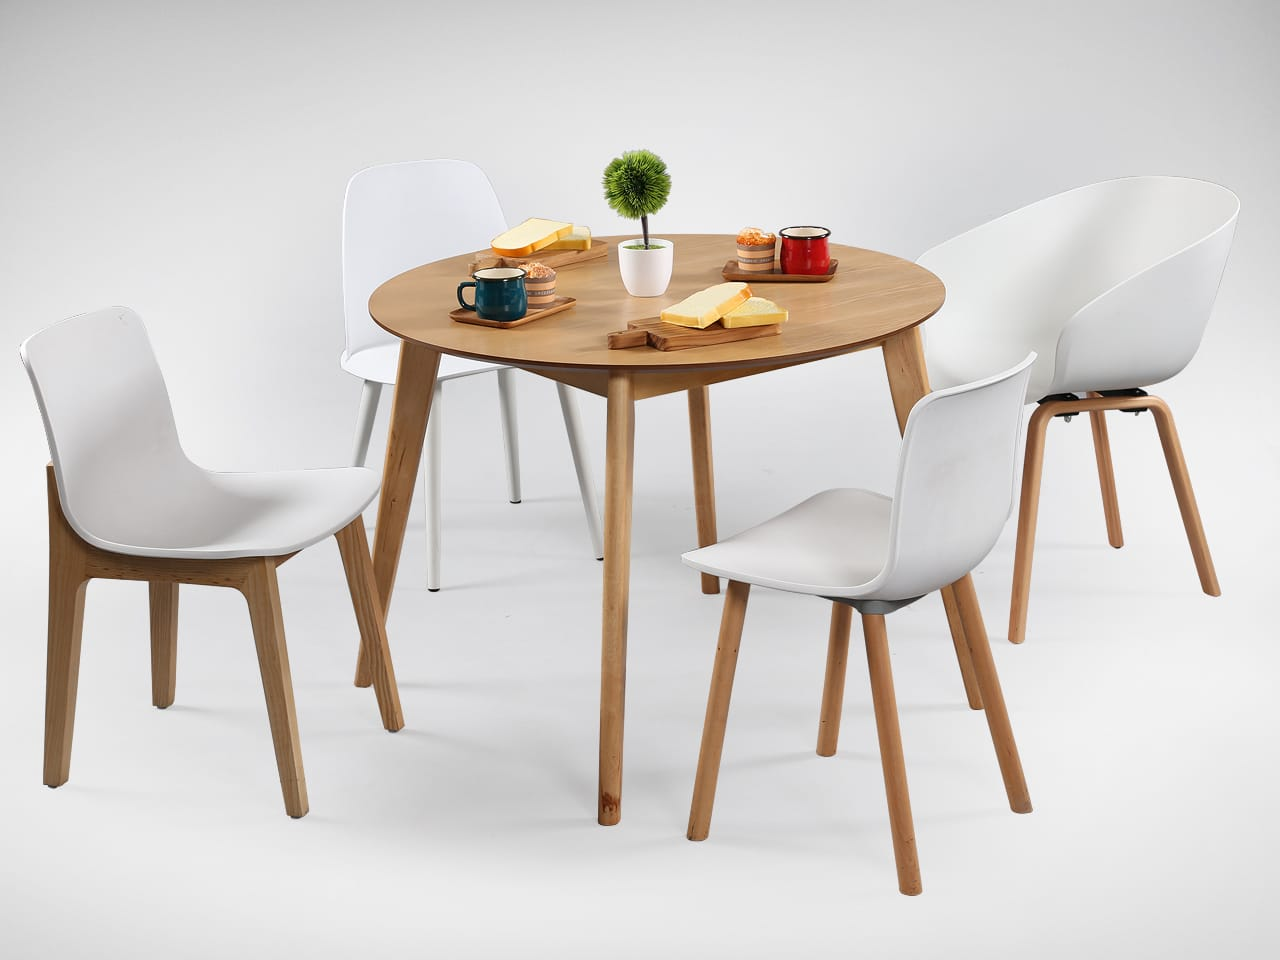 [Ariel Armchair, Plug + Square Leg Chair, Plug + Round Leg Chair,Troy Chair & Oakland Round Dining Table – Natural]<br />